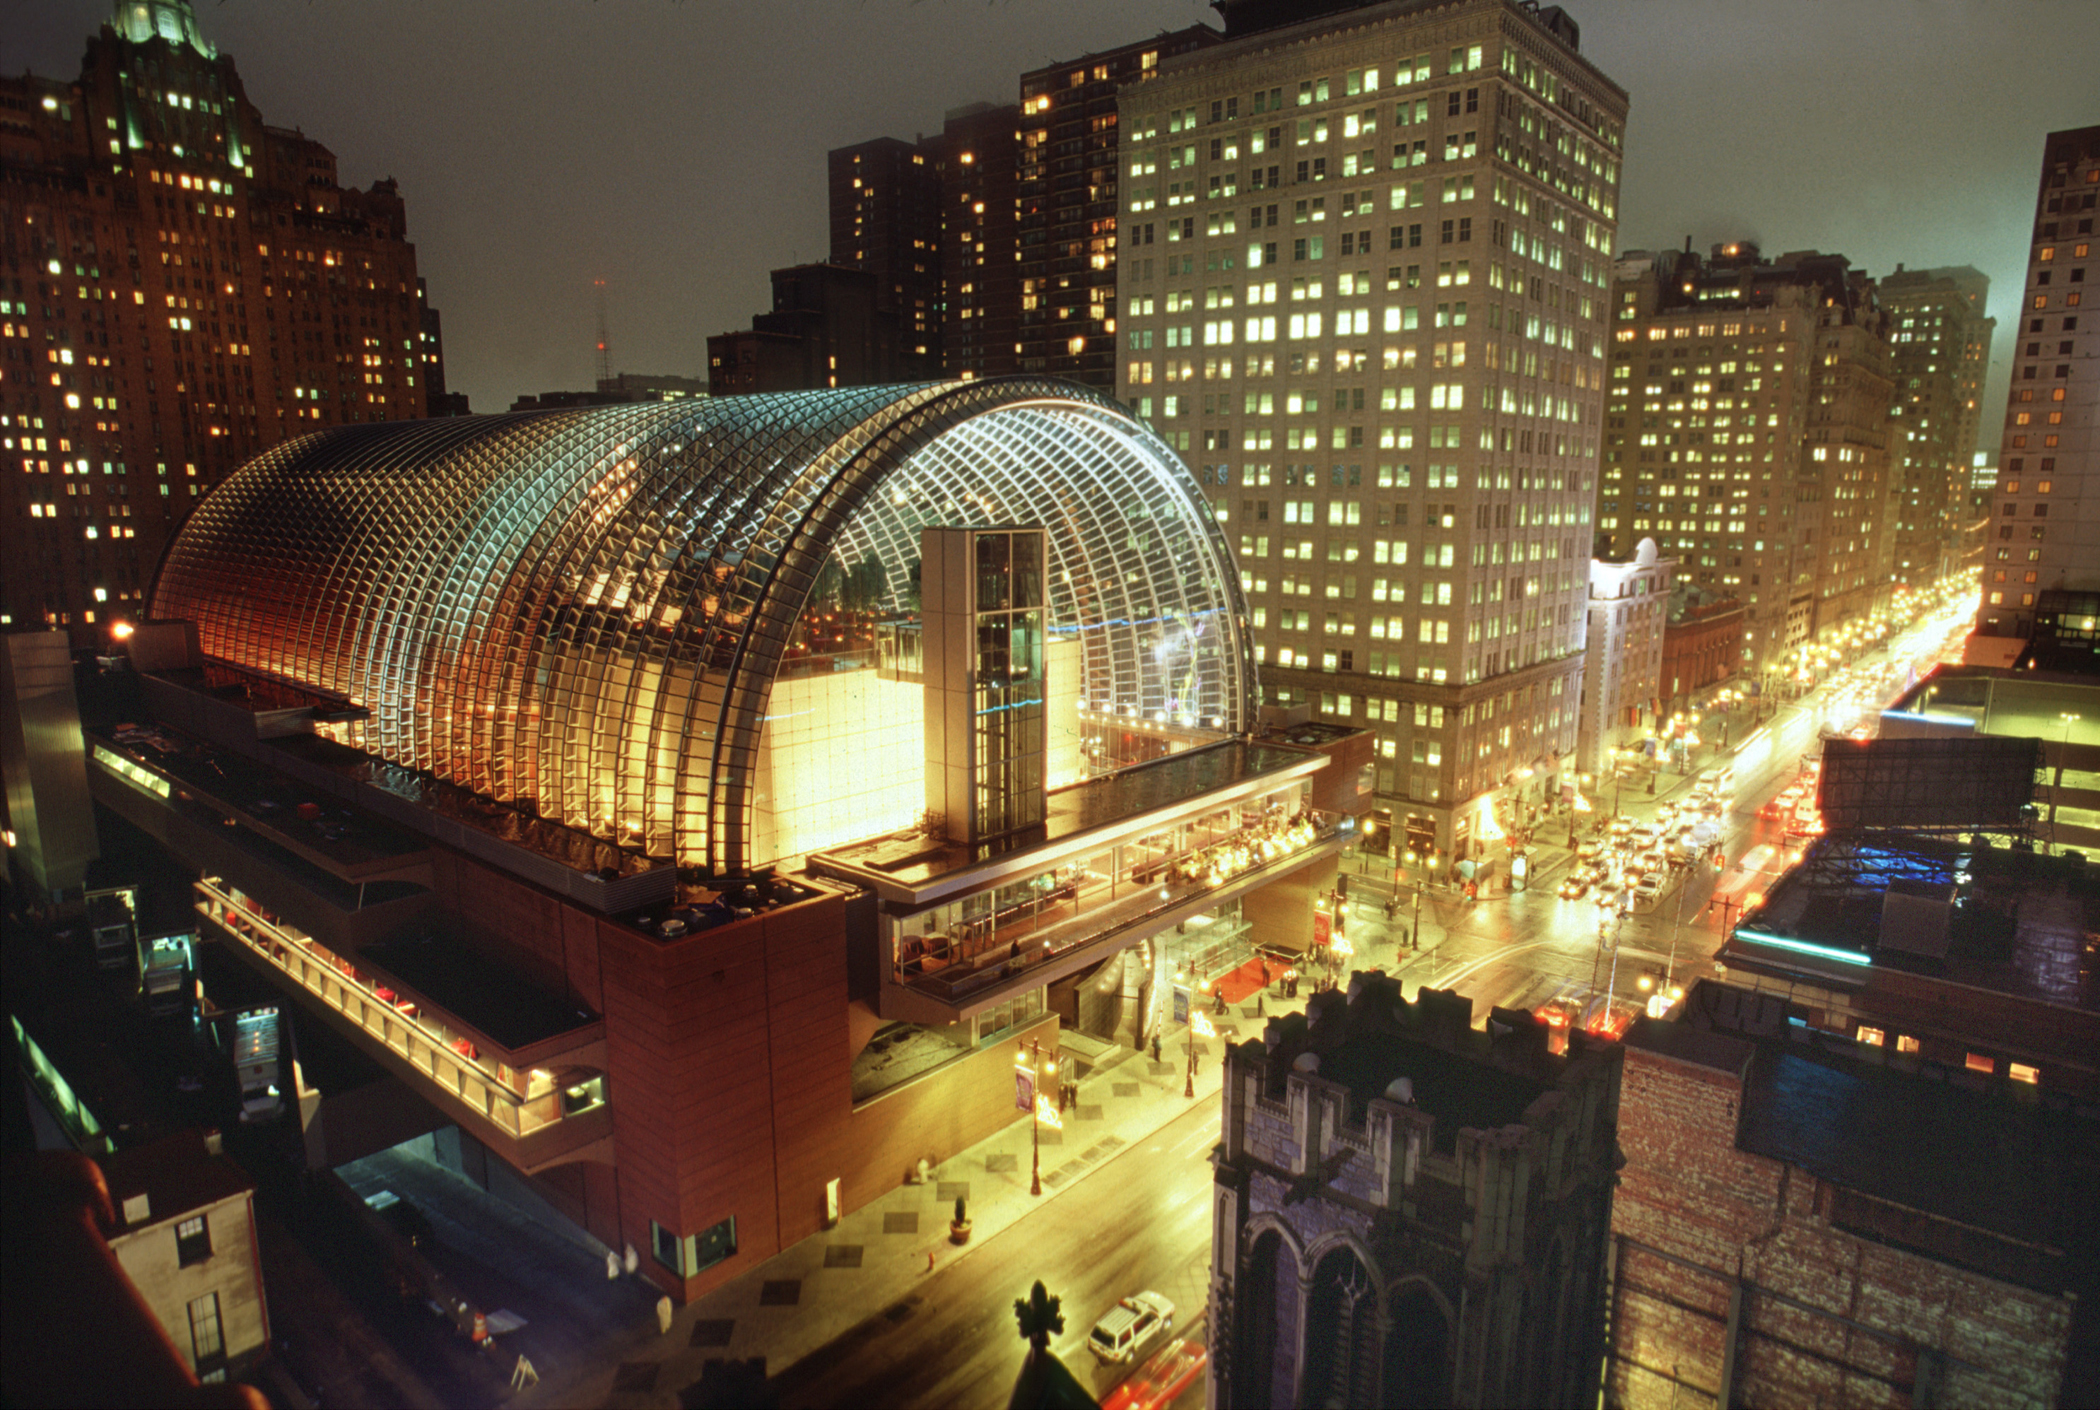 kimmel-center-for-the-performing-arts-by-b-krist.jpg